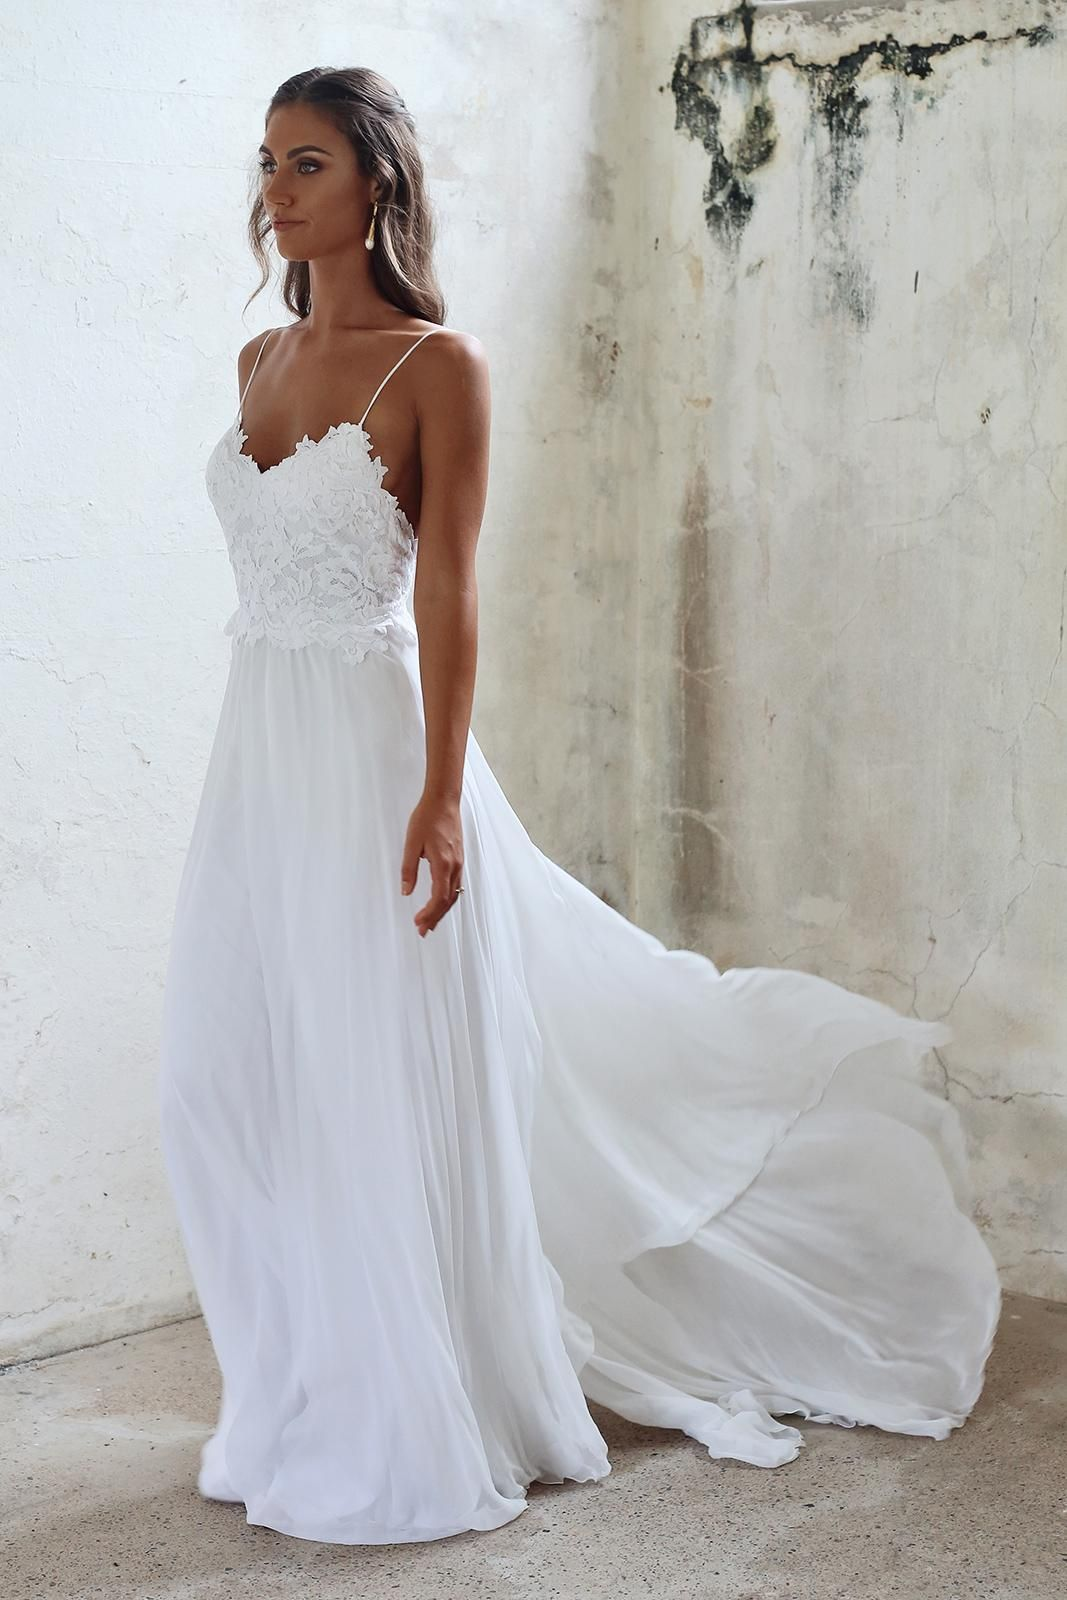 beach wedding dress such a pretty timeless and elegant wedding dress. would look perfect with  our boho MINYARD